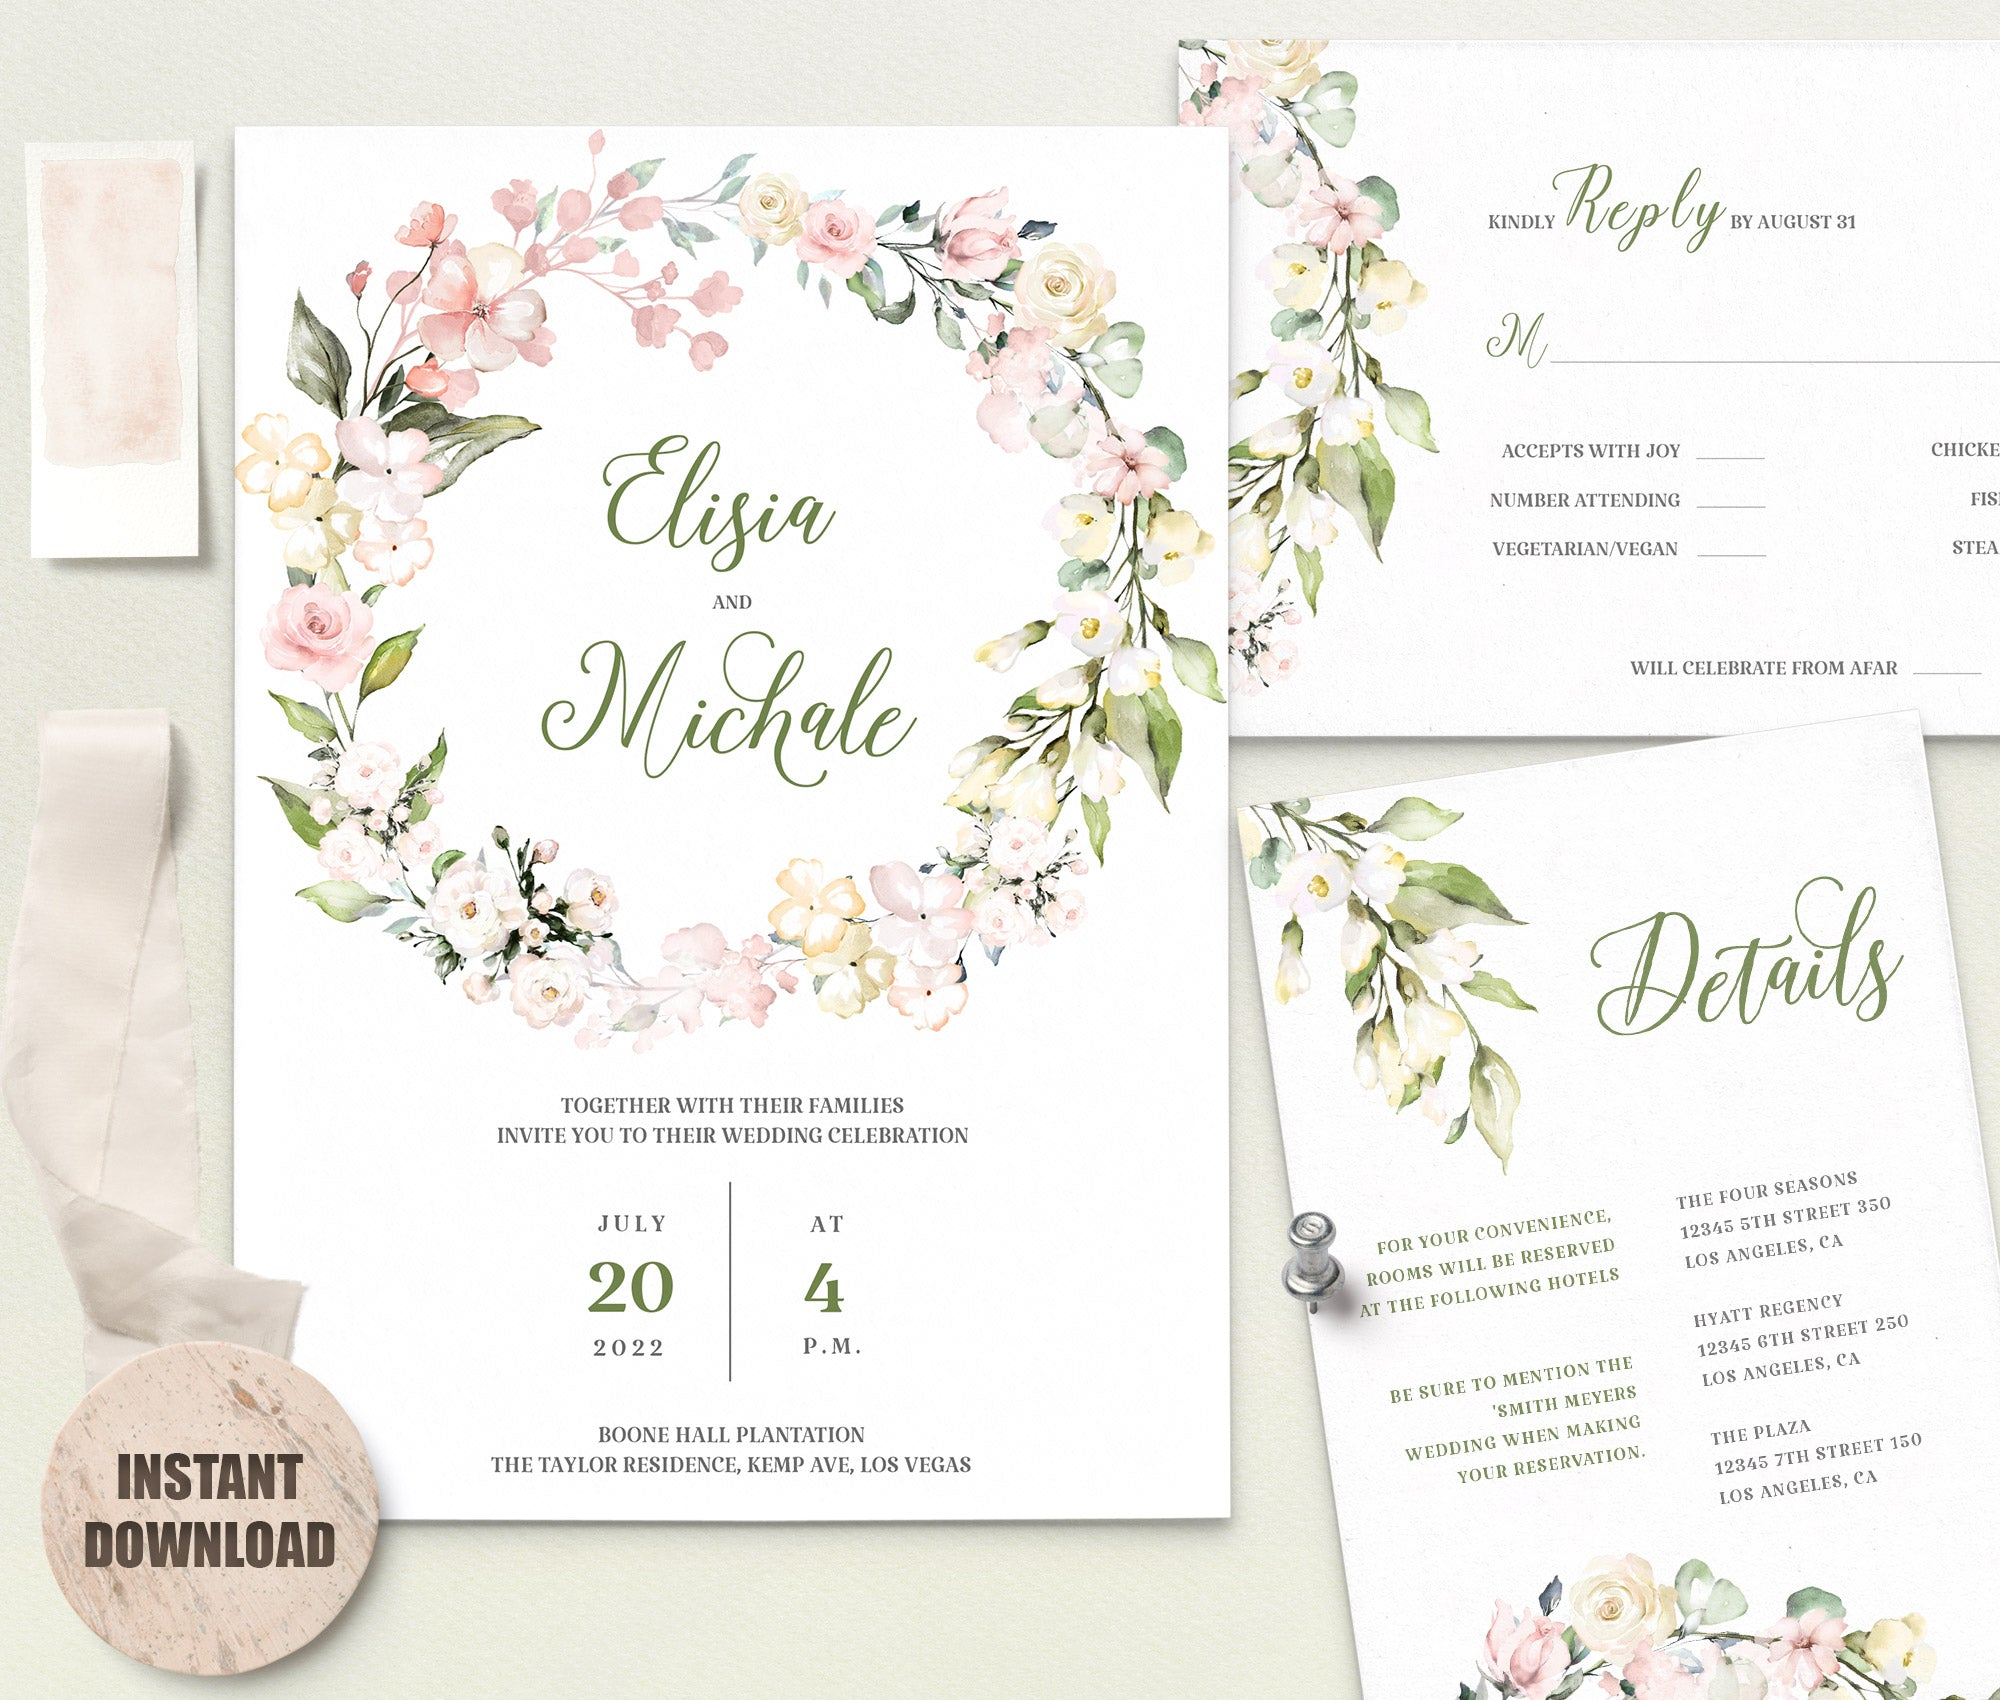 Elegant WEDDING INVITATION Template - Loval 6